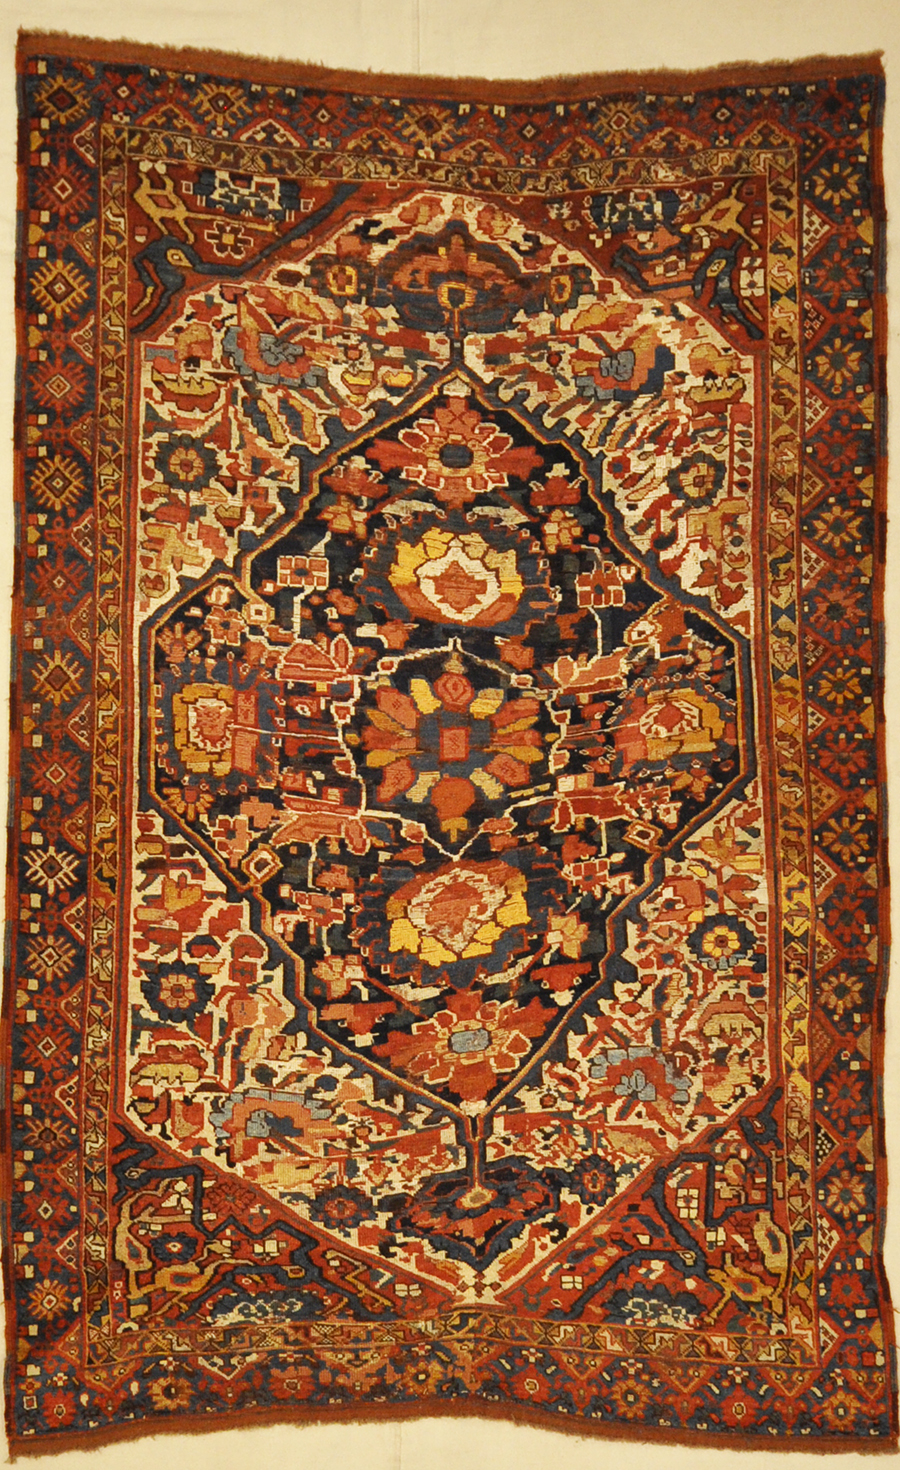 Antique Qasugai Rugs and More